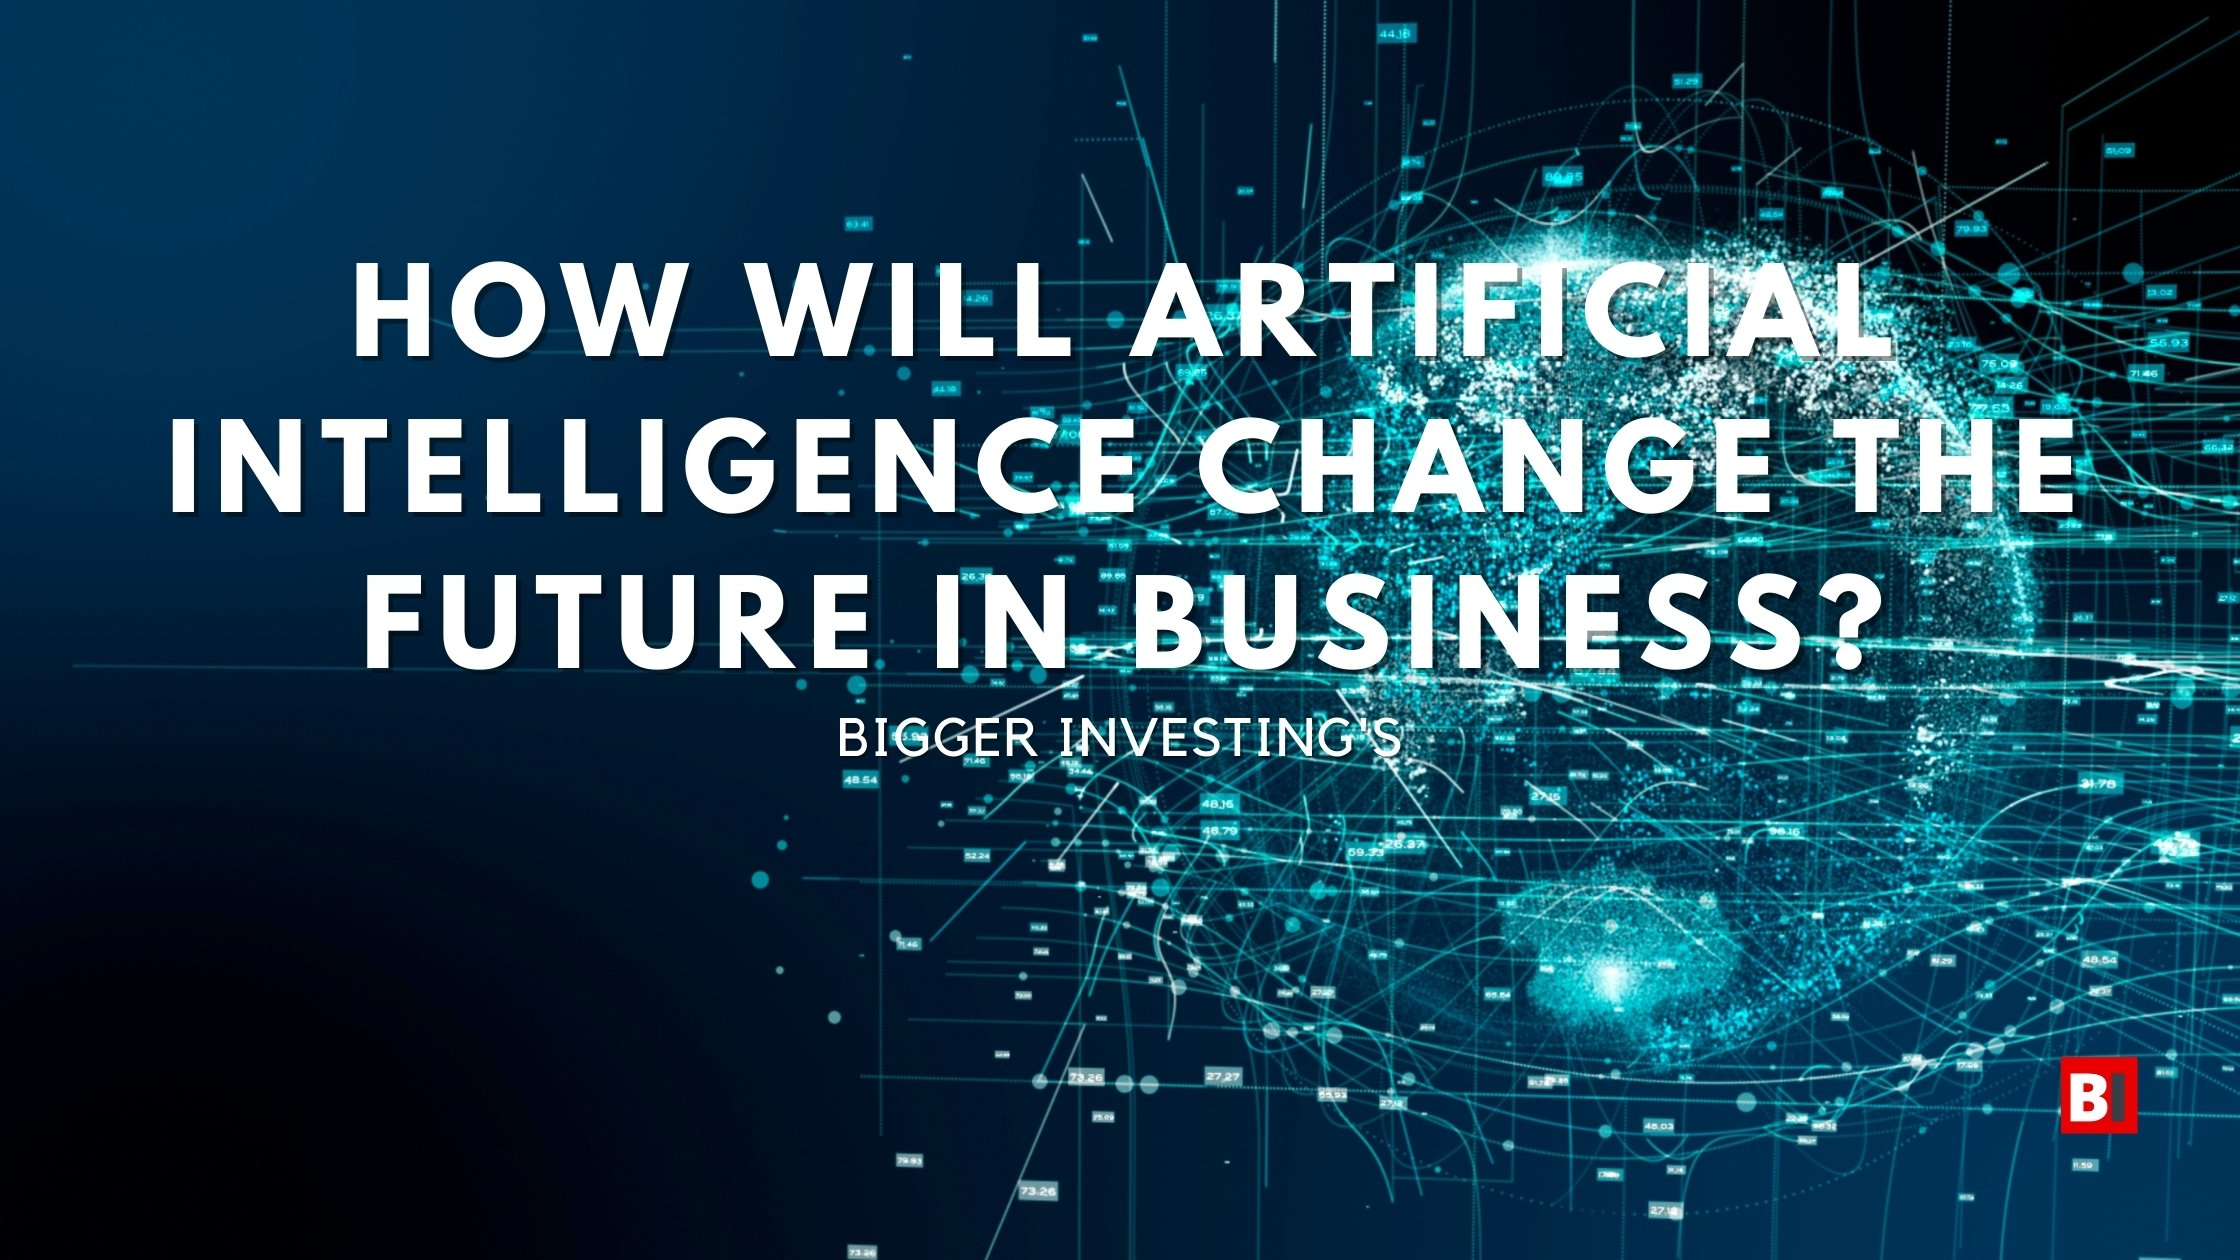 How Will Artificial Intelligence Change The Future In Business?